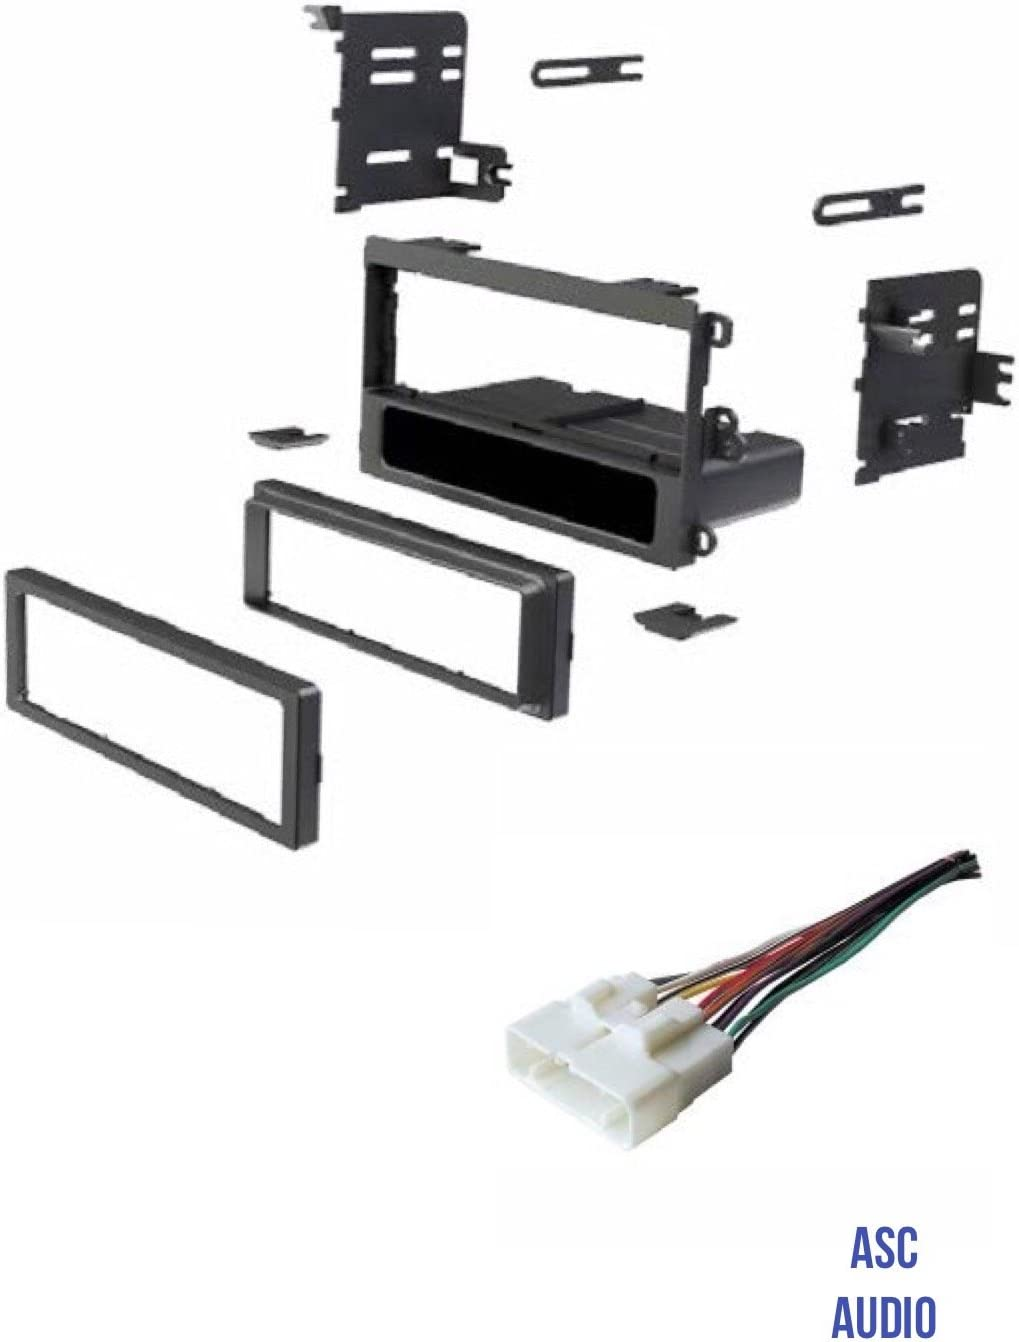 1998-2000 Isuzu Amigo 1998 1999 2000 2001 2002 2003 2004 Isuzu Rodeo ASC Car Stereo Install Dash Kit and Wire Harness to Install an Aftermarket Single Din Radio for some 1998-2002 Honda Passport